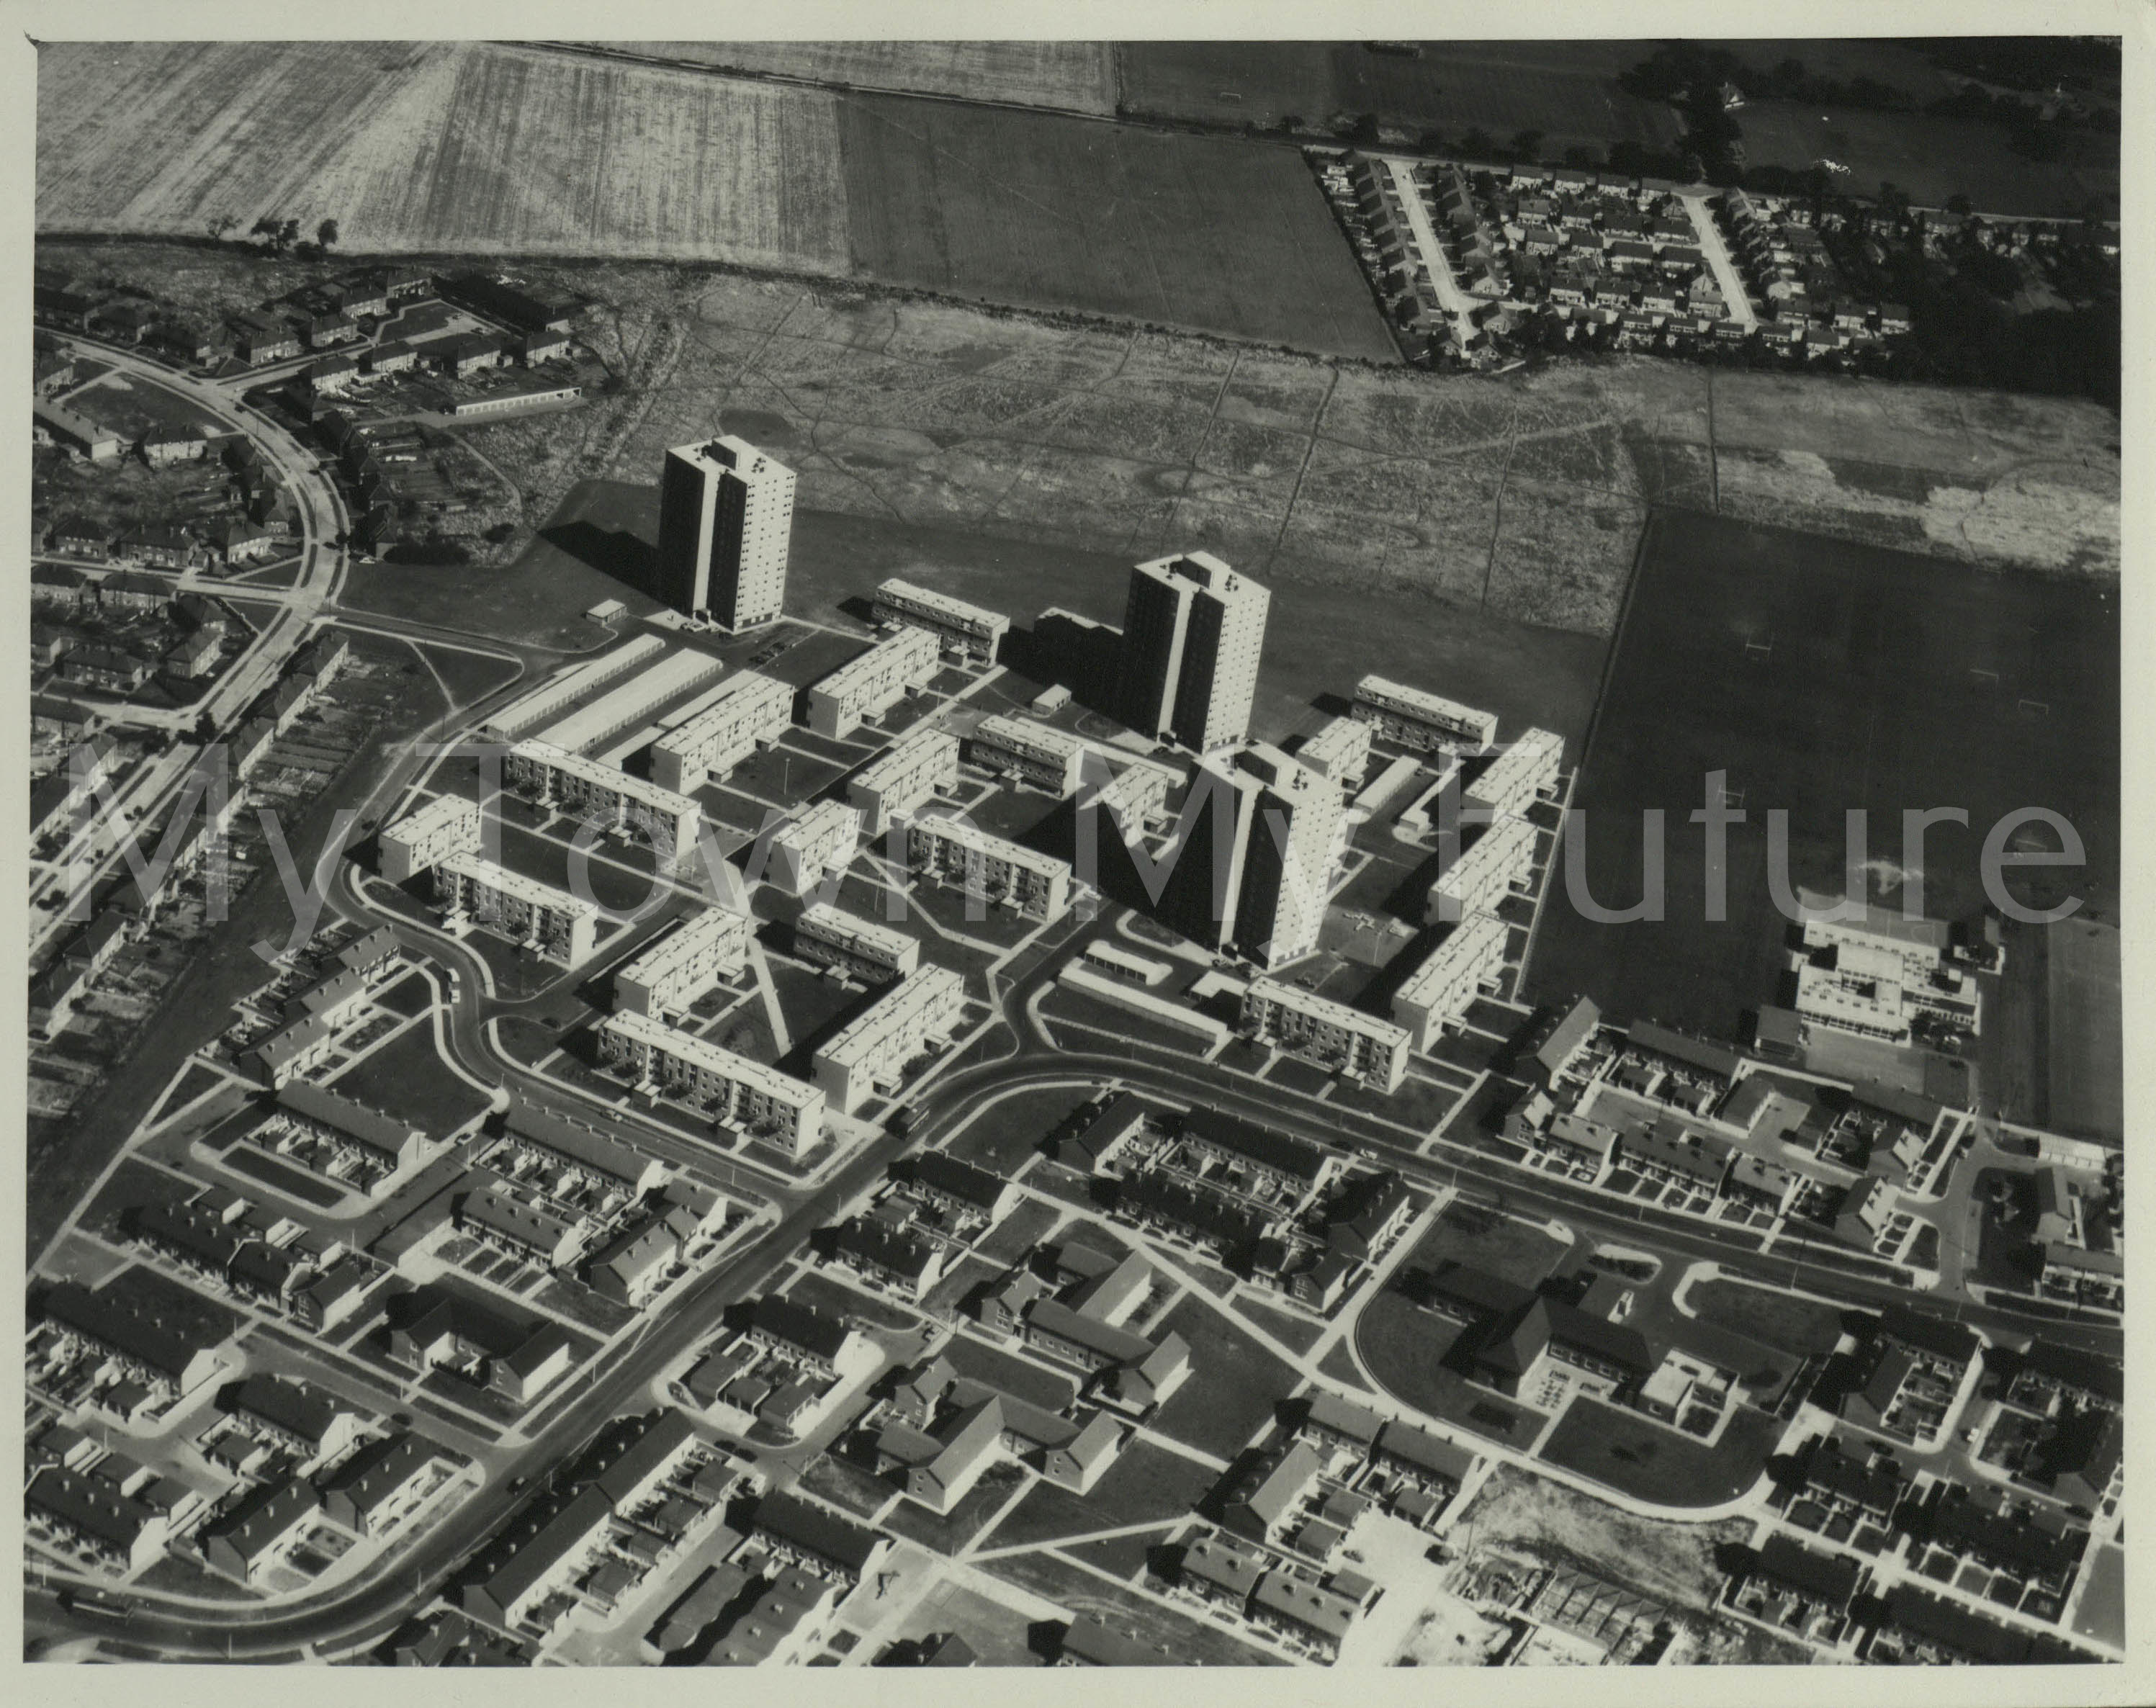 Middlesbrough Ormesby, 1972, Aerofilms